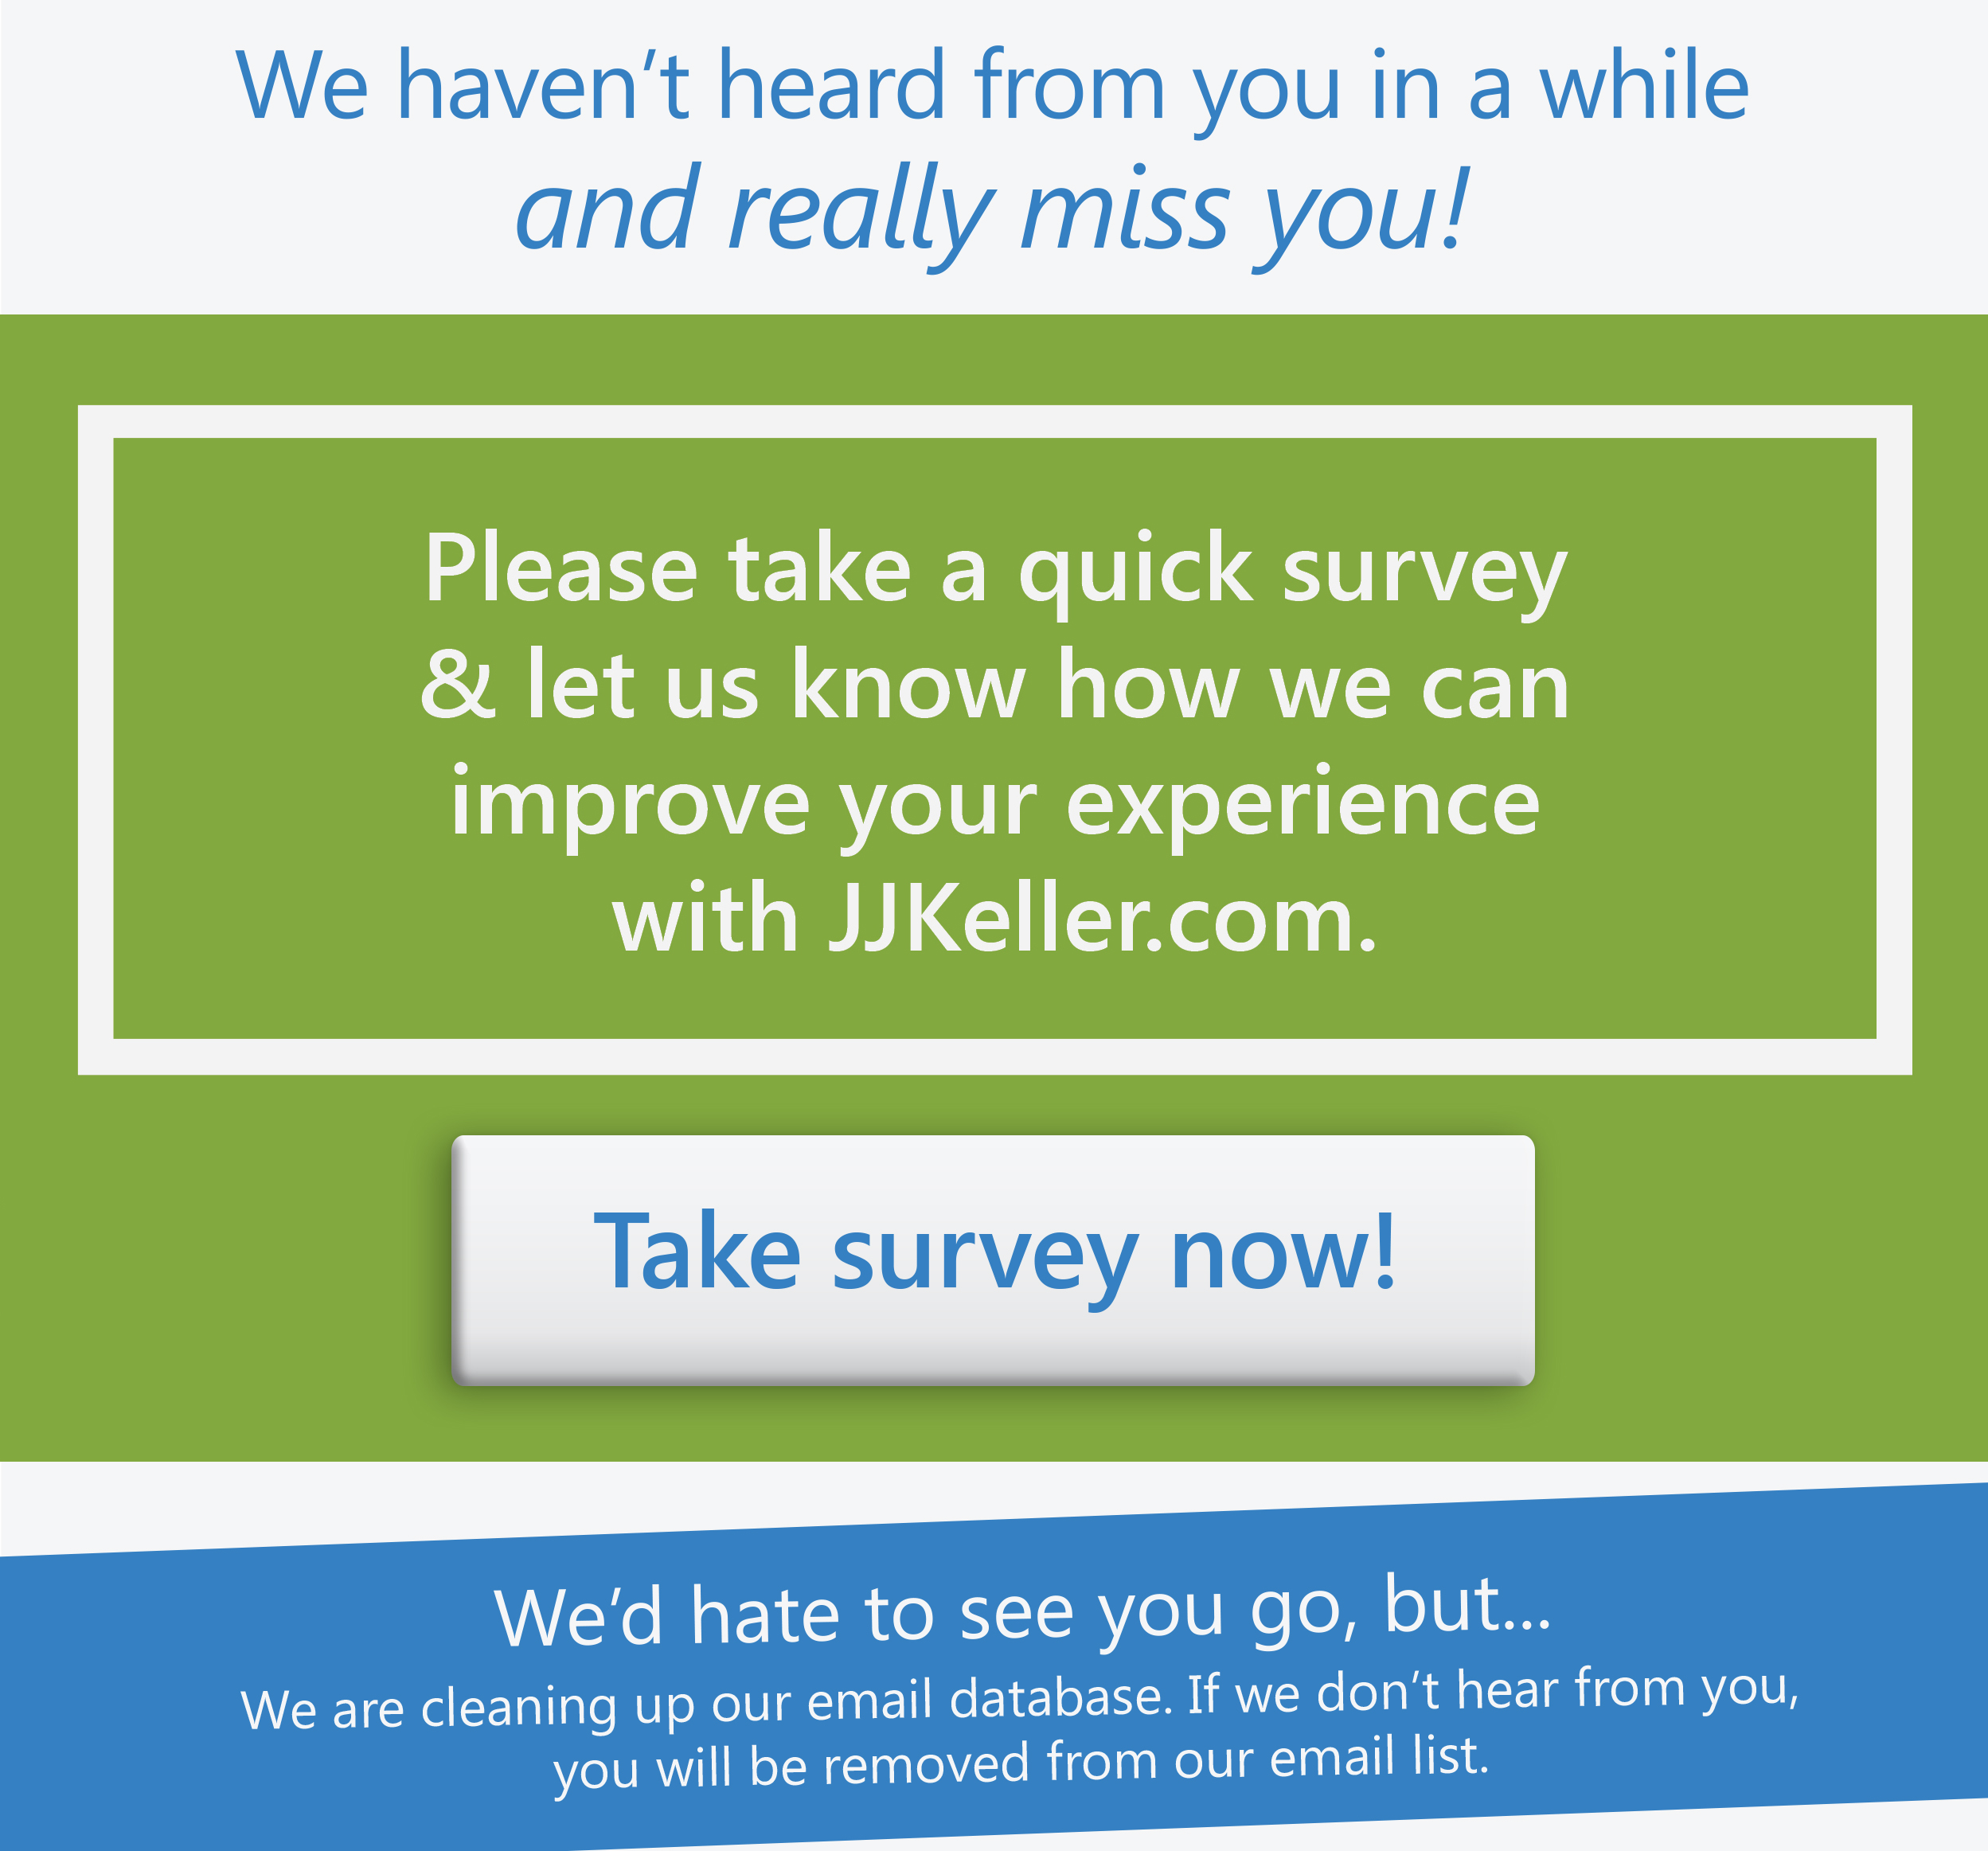 We haven't heard from you in a while and really miss you! Please take a quick survey and let us know how we can improve your experience with JJKeller.com! We are cleaning up our email database. If we don't hear from you, you will be removed from our email list.